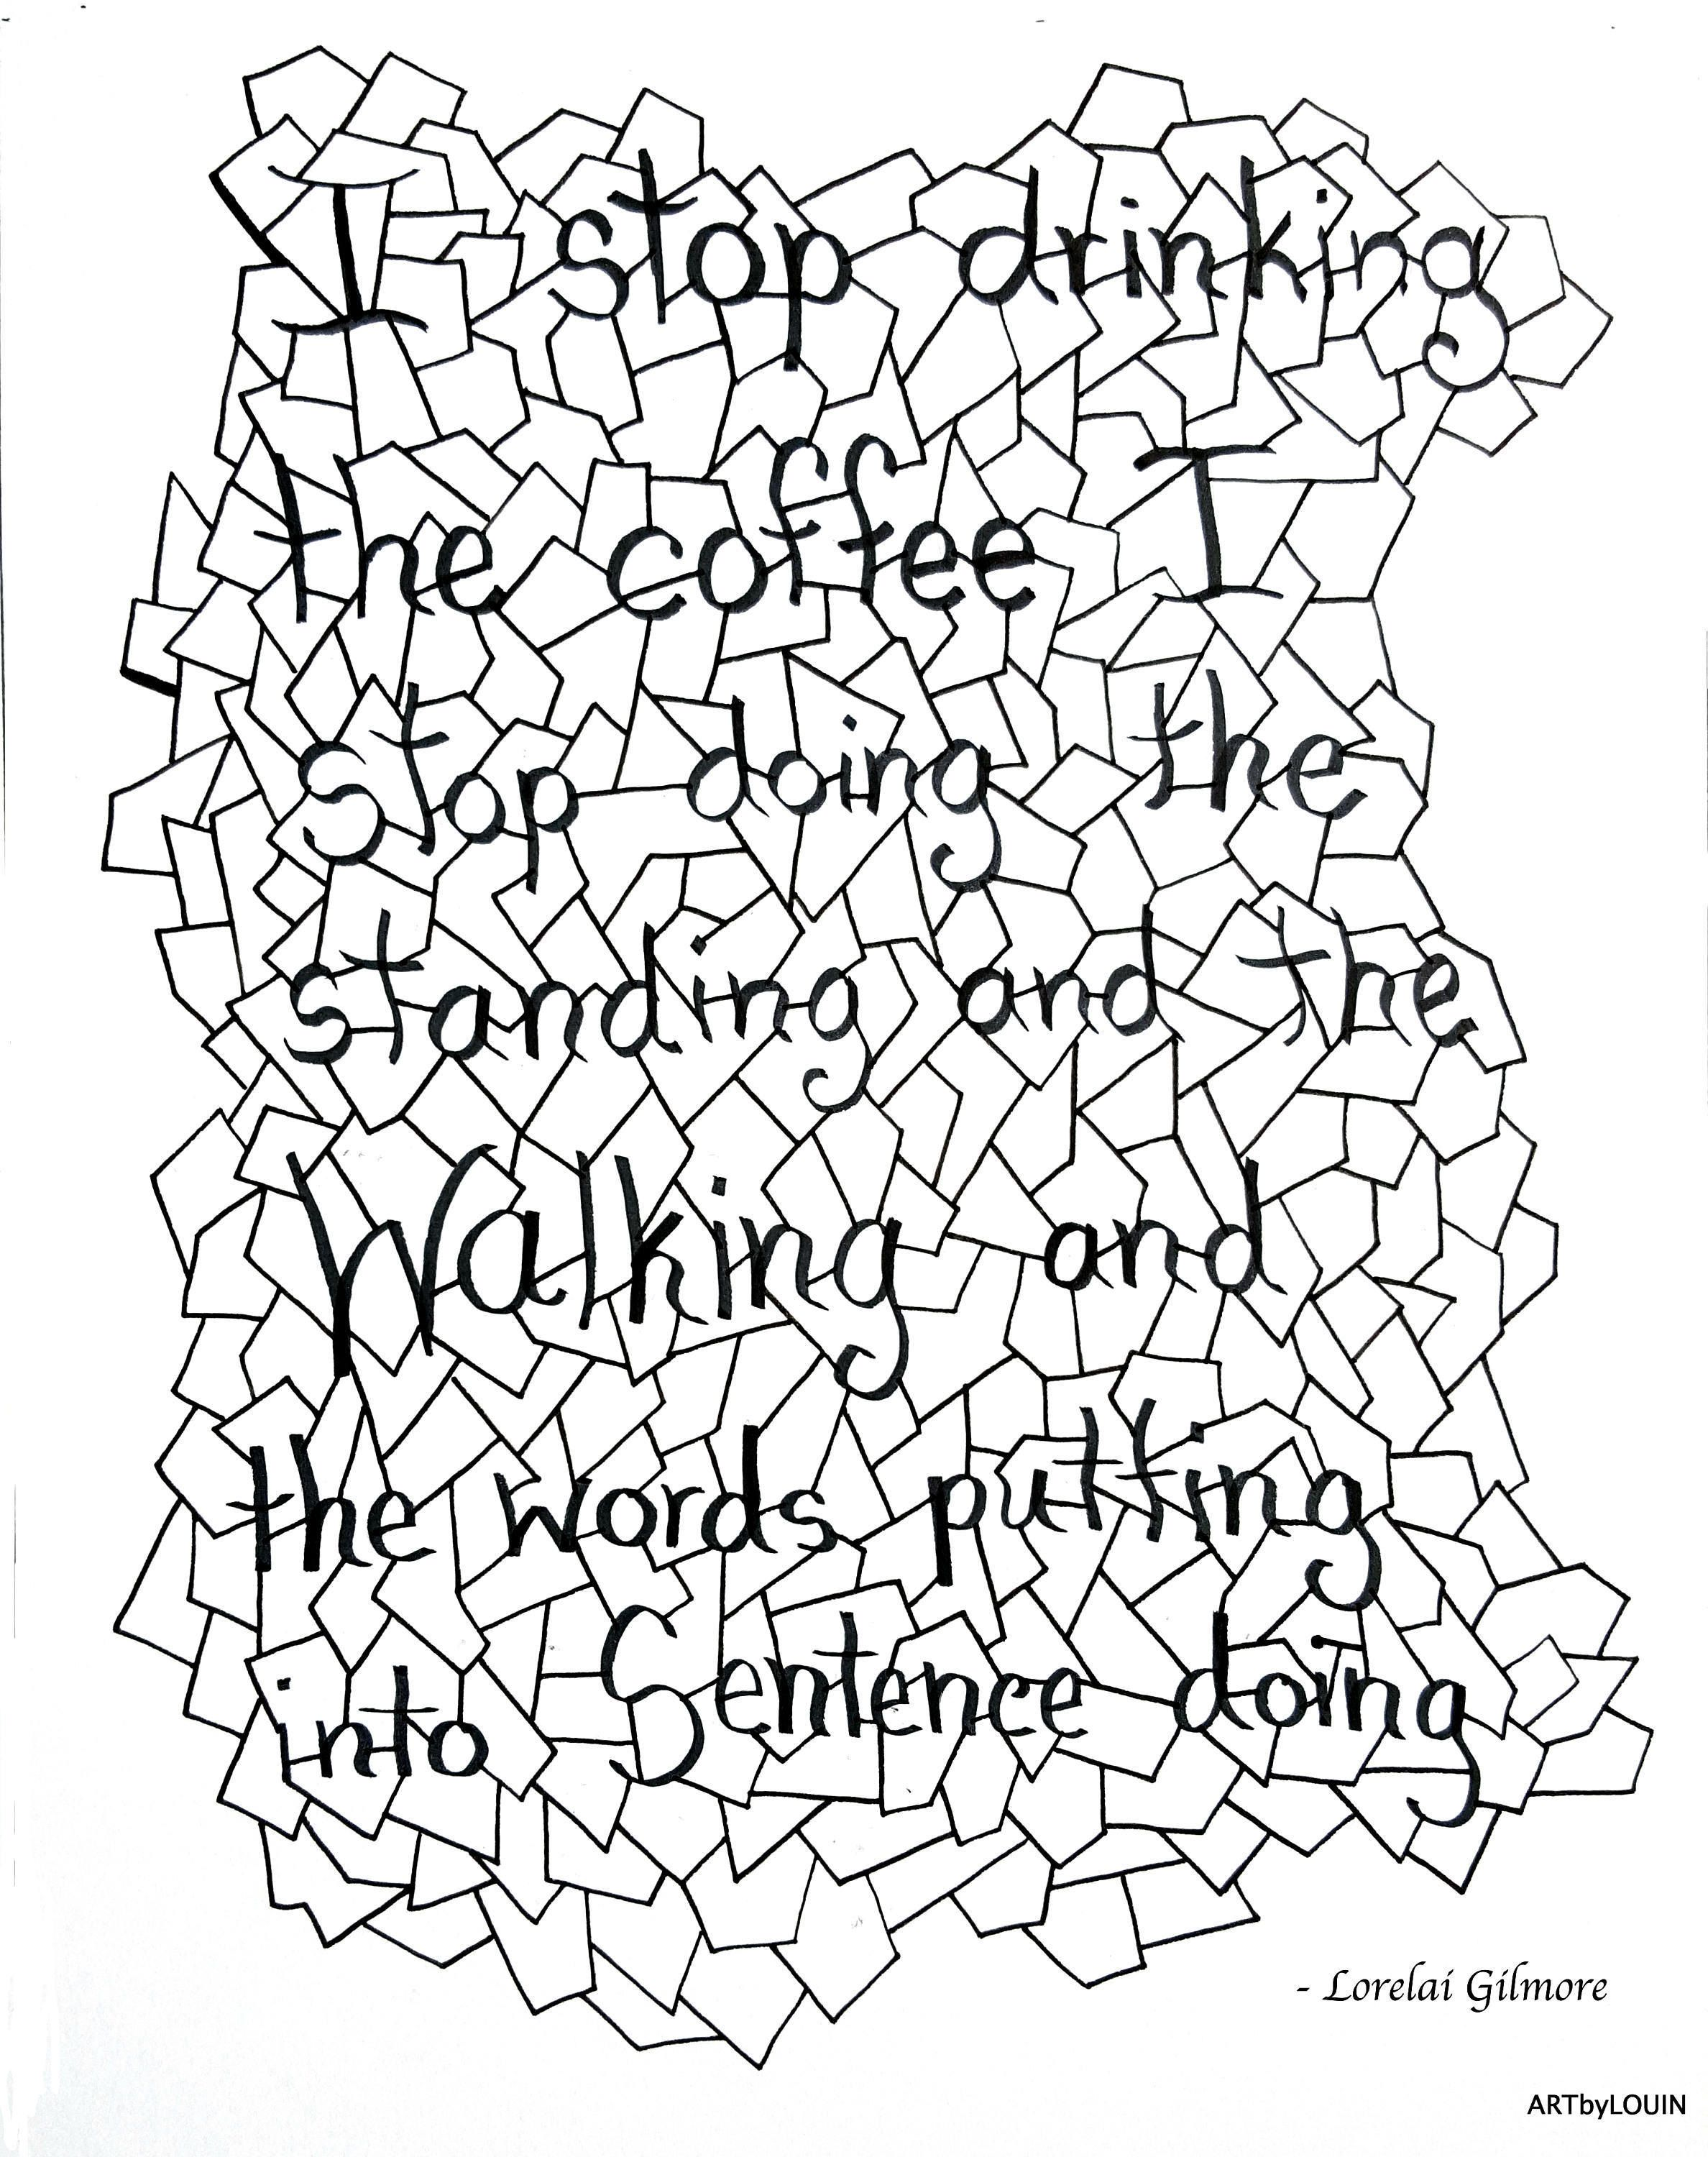 lorelai gilmore quote coloring page black and white i kolor